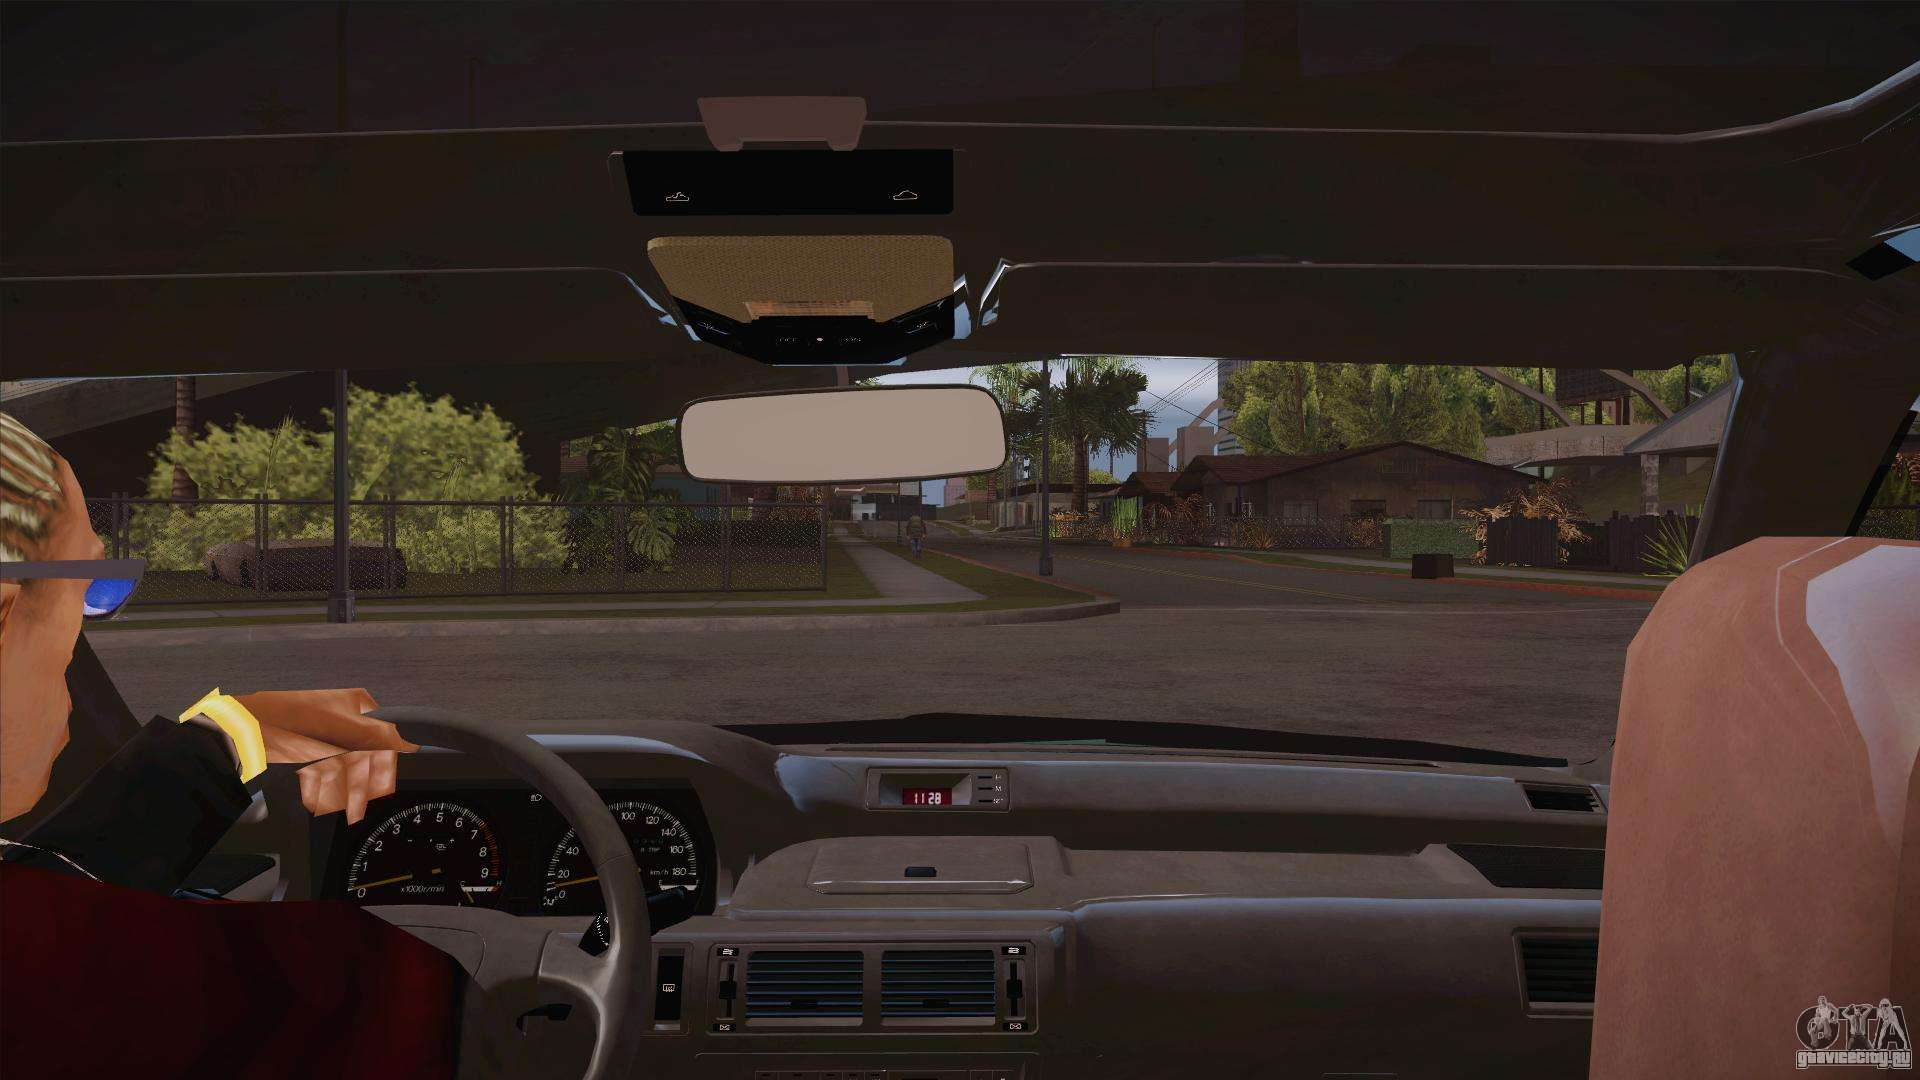 Gta san andreas cleo mod advanced speedometer (with download.